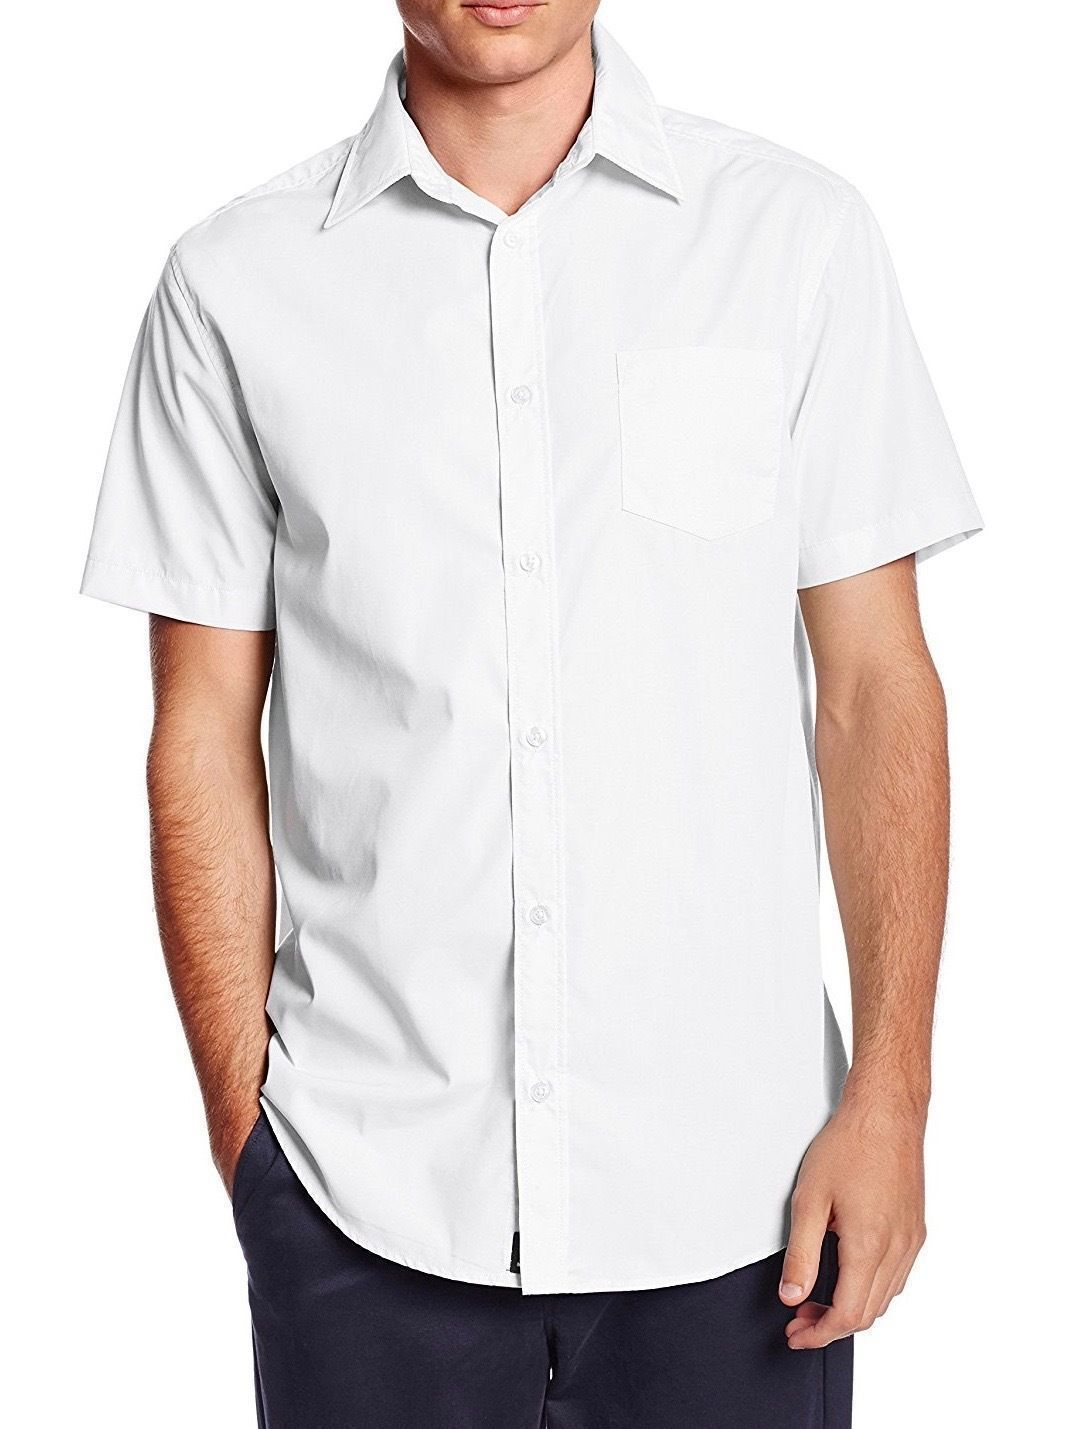 Alberto Cardinali Men's Classic Button Down Short Sleeve Solid Dress Shirt White